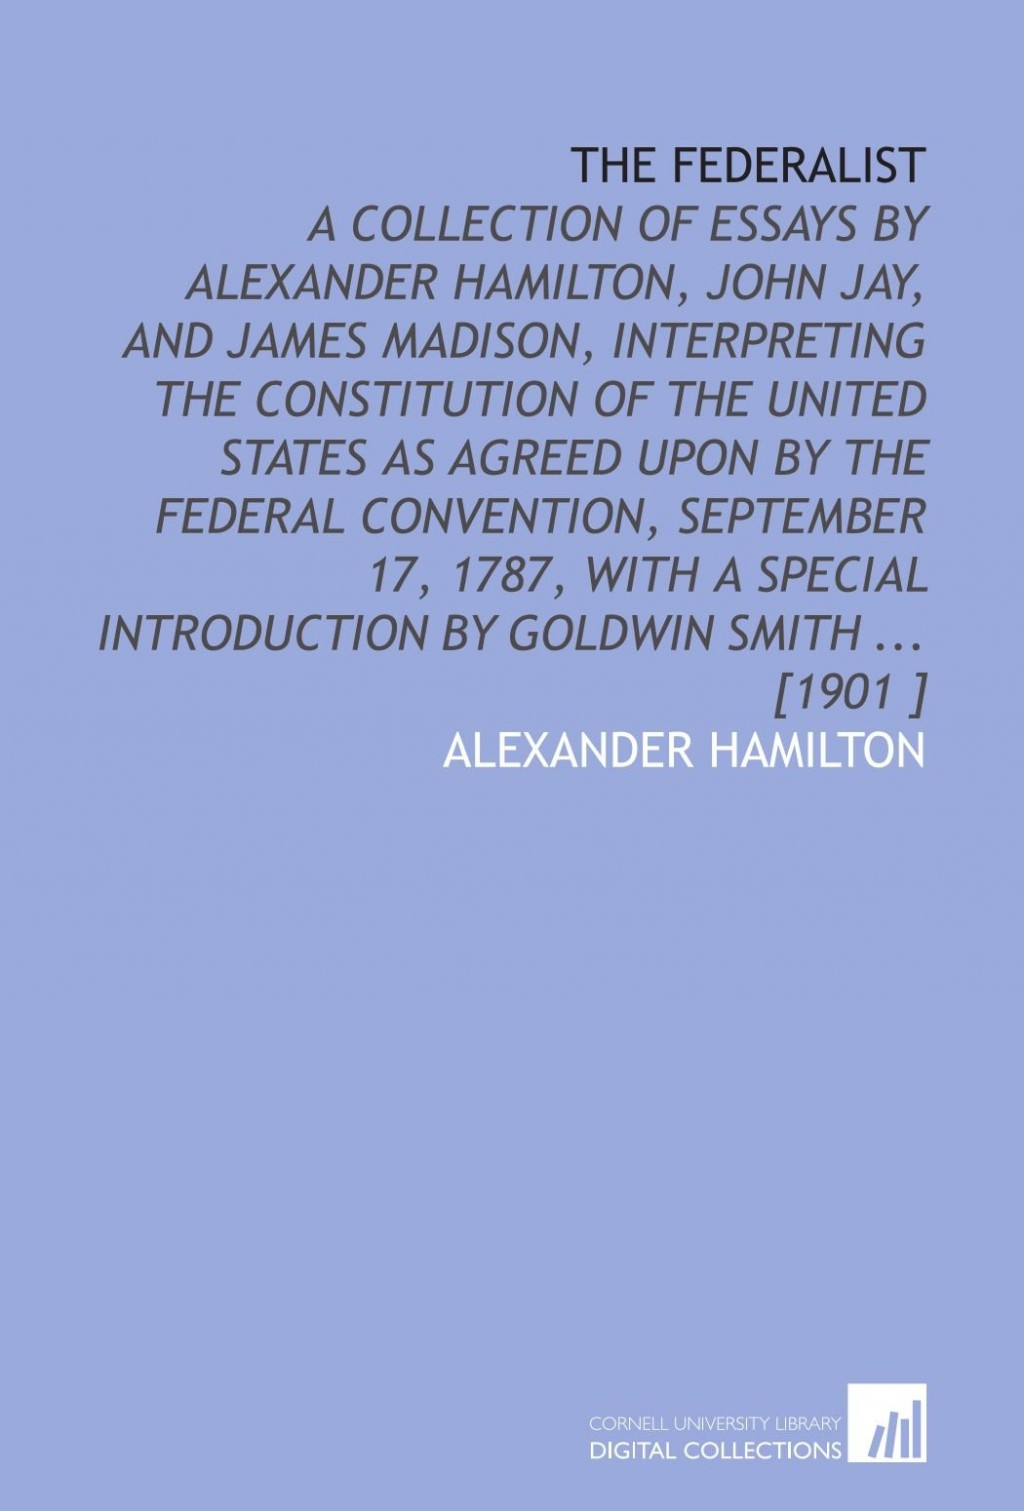 021 61nd3nk Pal Alexander Hamilton Essays Essay Frightening 51 Federalist Papers 78 Did Wrote Large